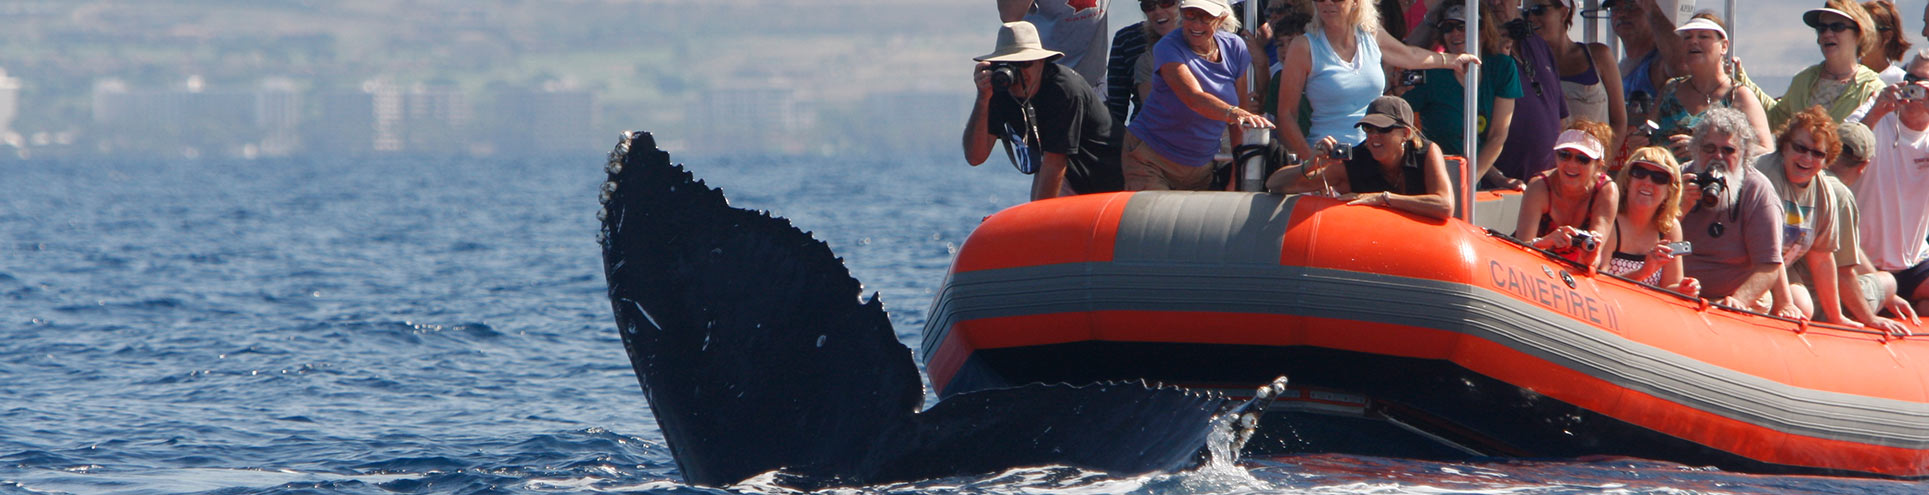 Whale Tails Inches Away